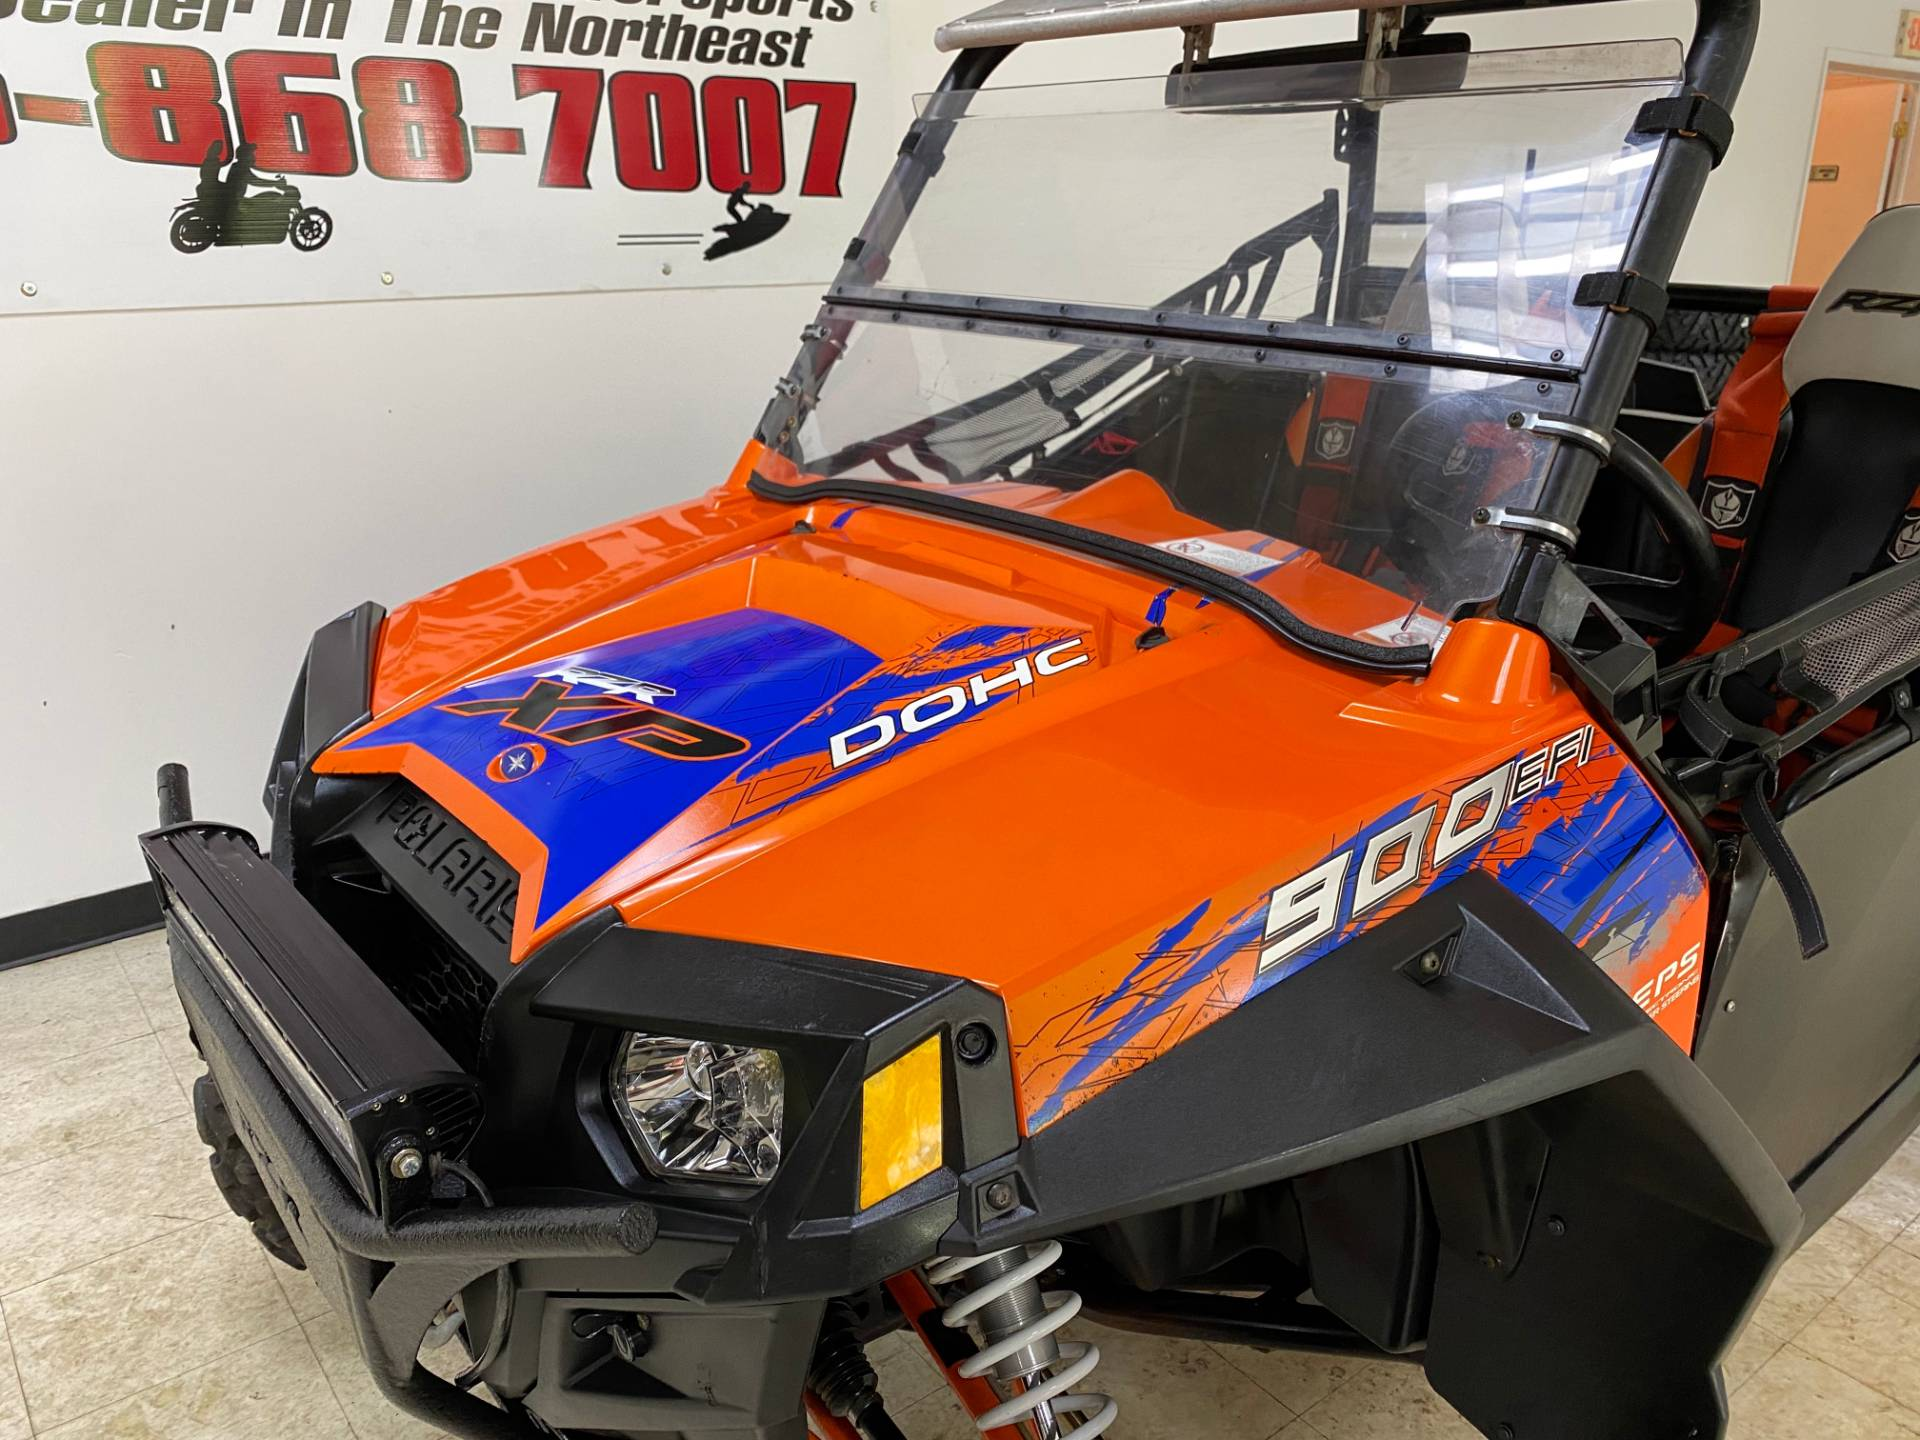 2013 Polaris RZR® XP 900 EPS LE in Herkimer, New York - Photo 23